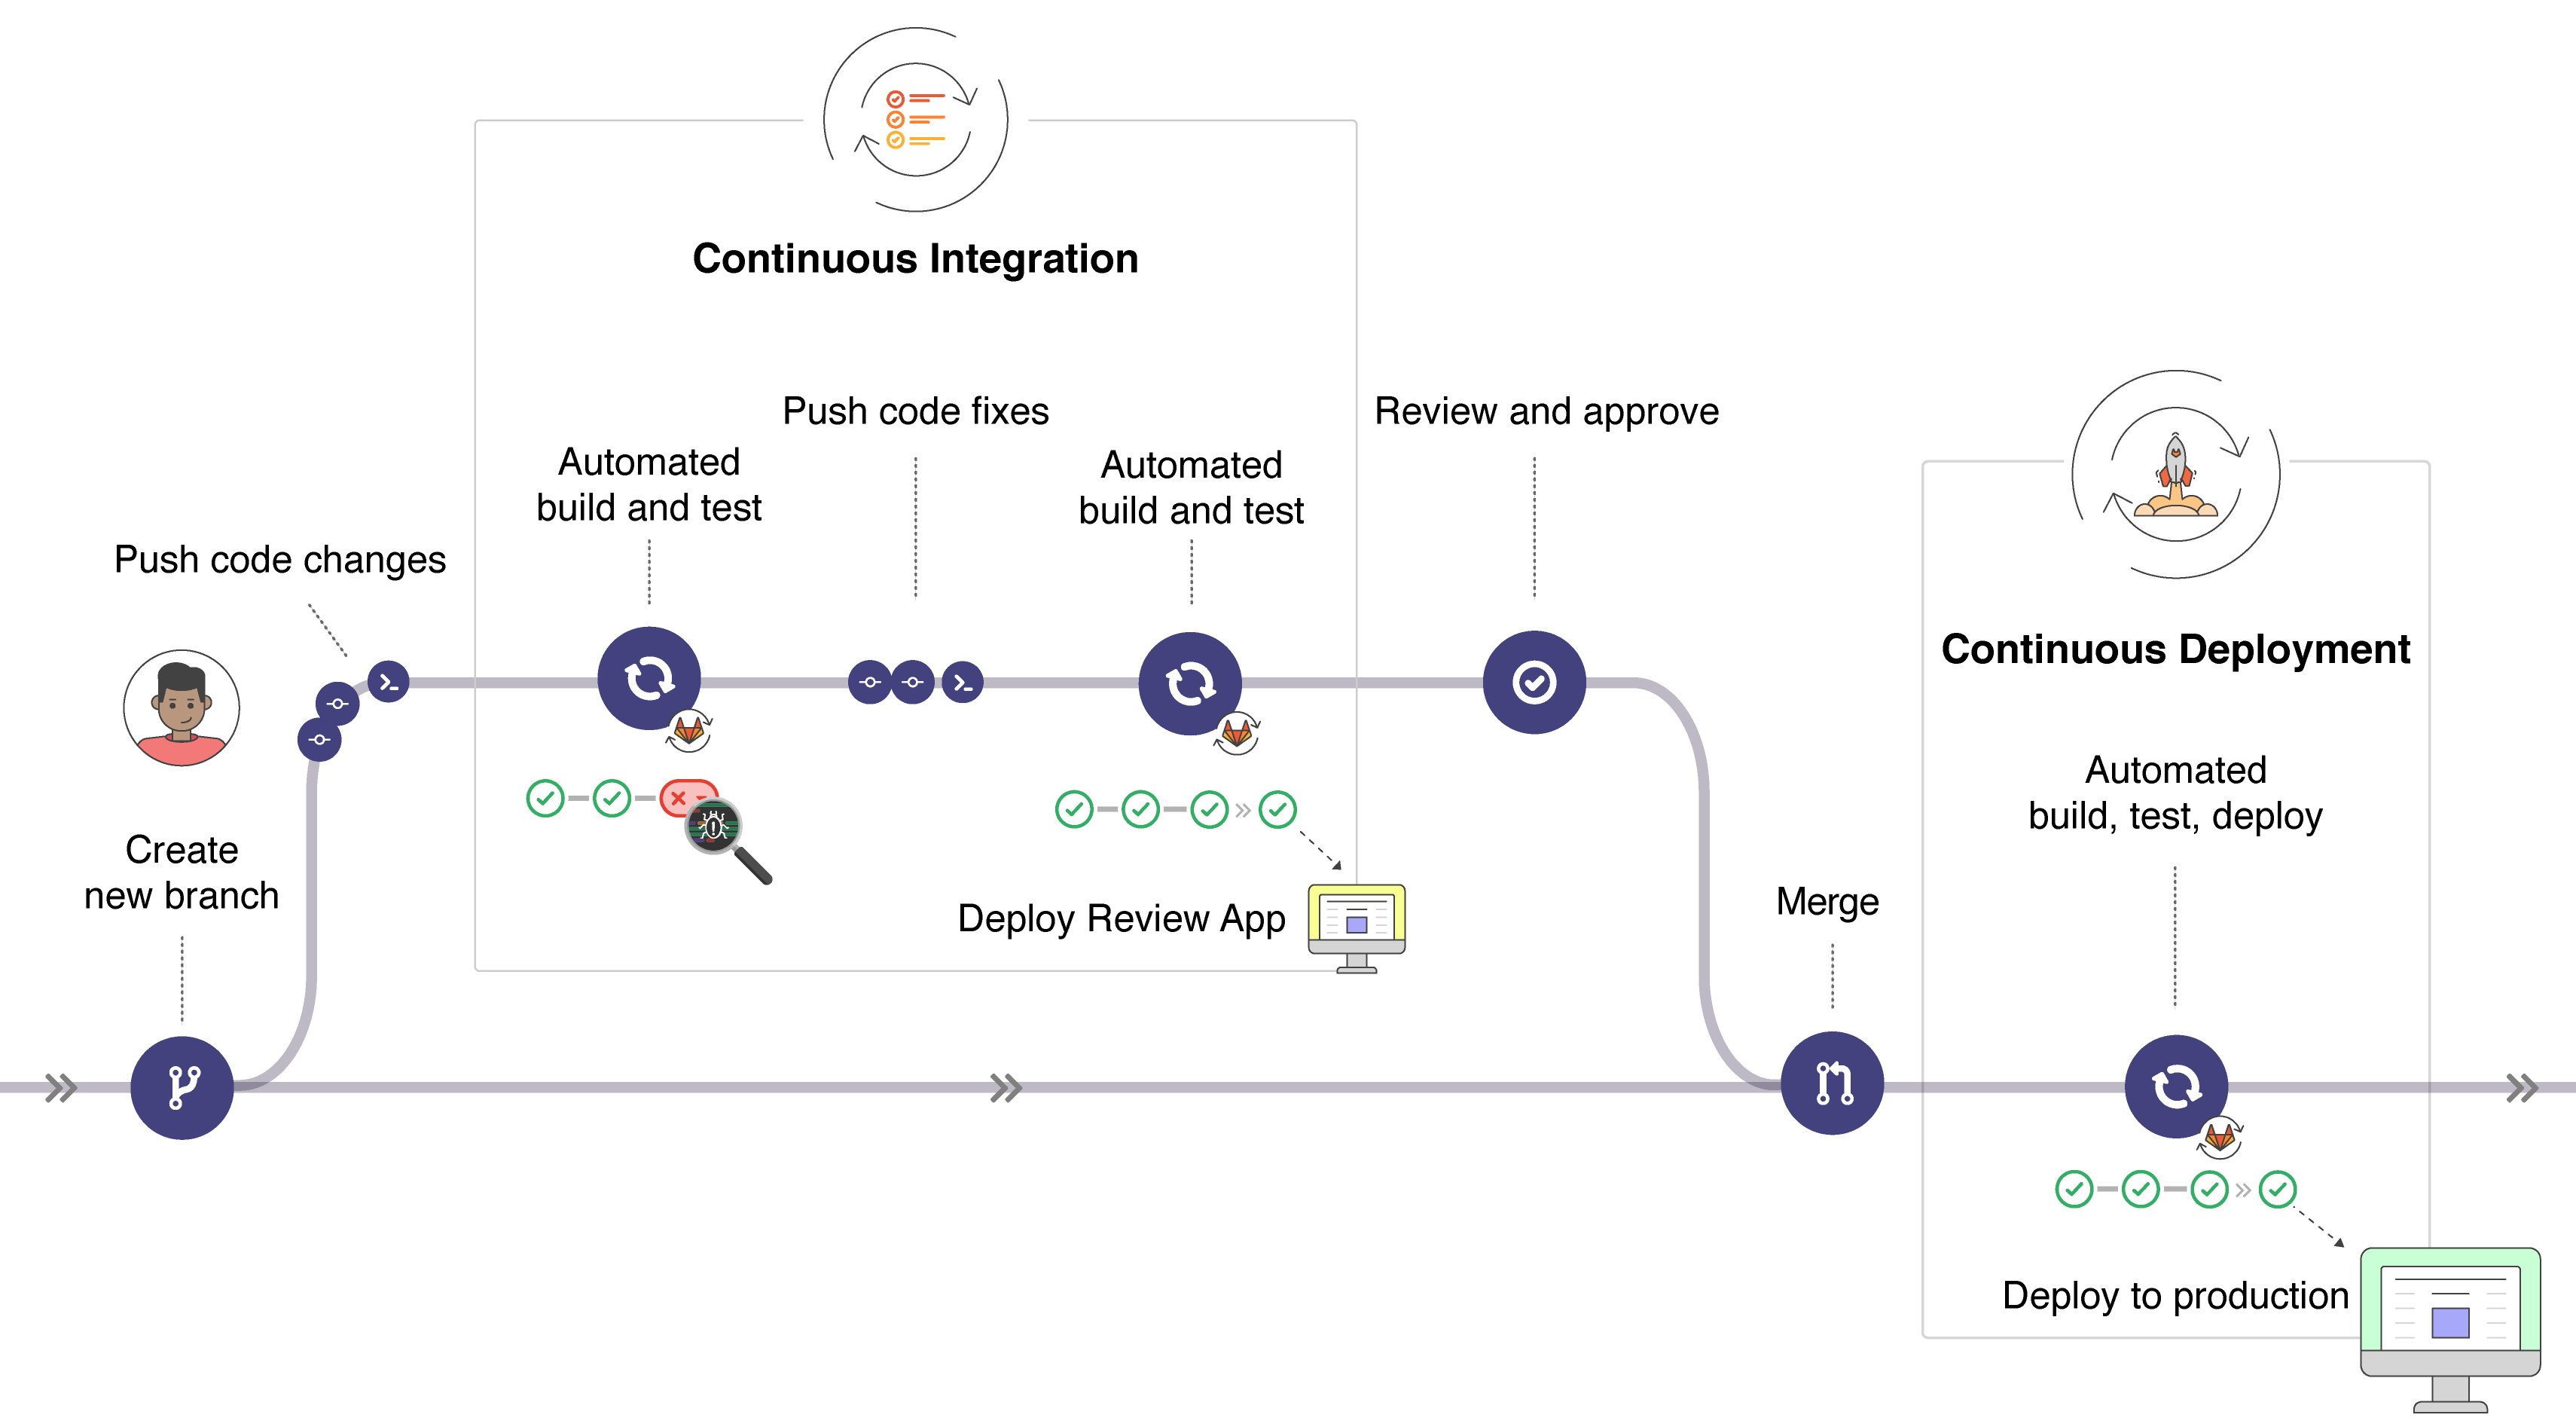 doc/ci/introduction/img/gitlab_workflow_example_11_9.png